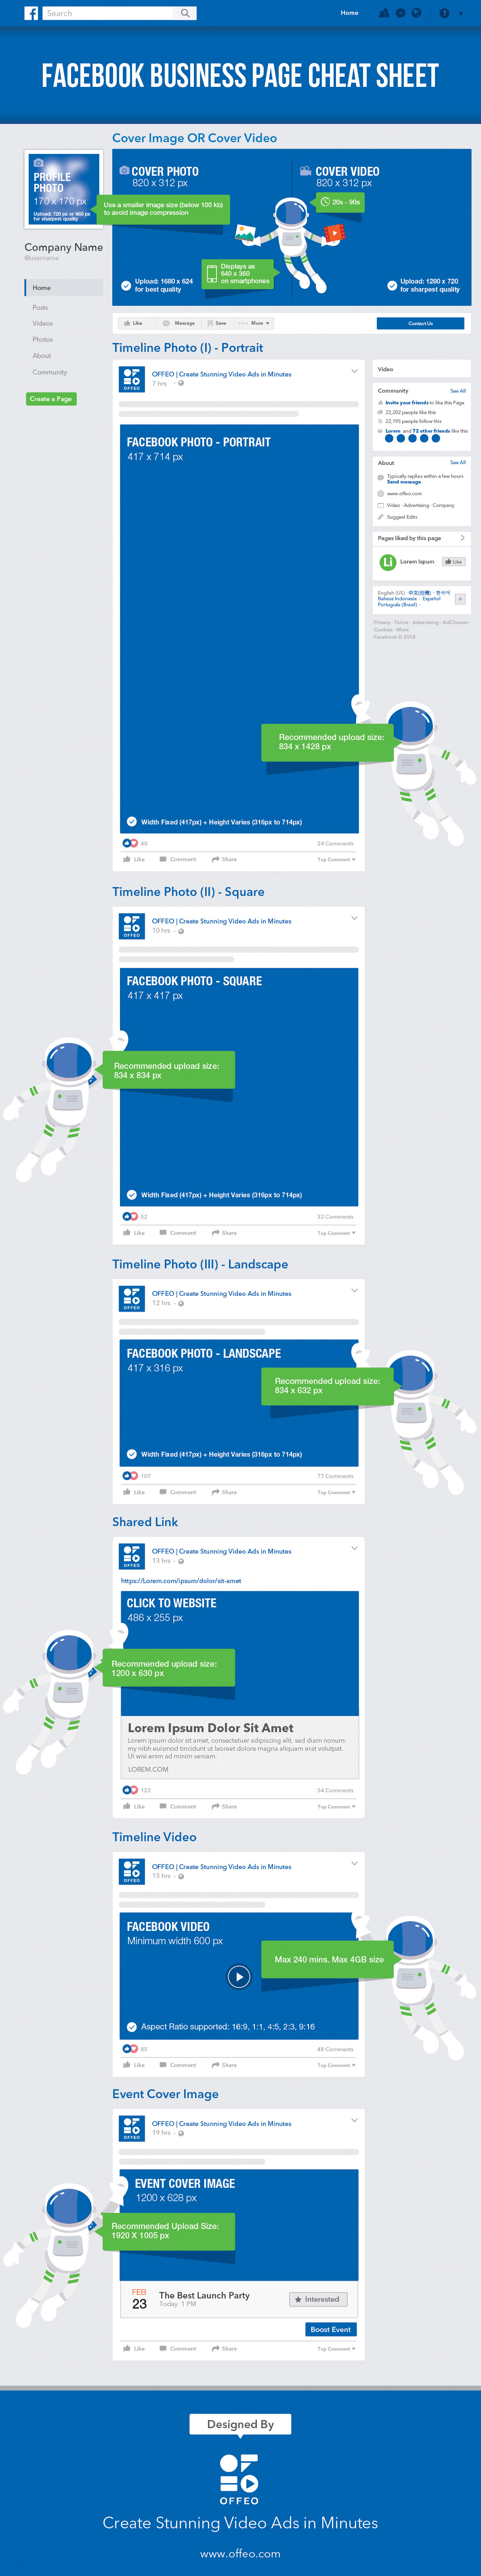 Facebook Cheat Sheet for Business Pages